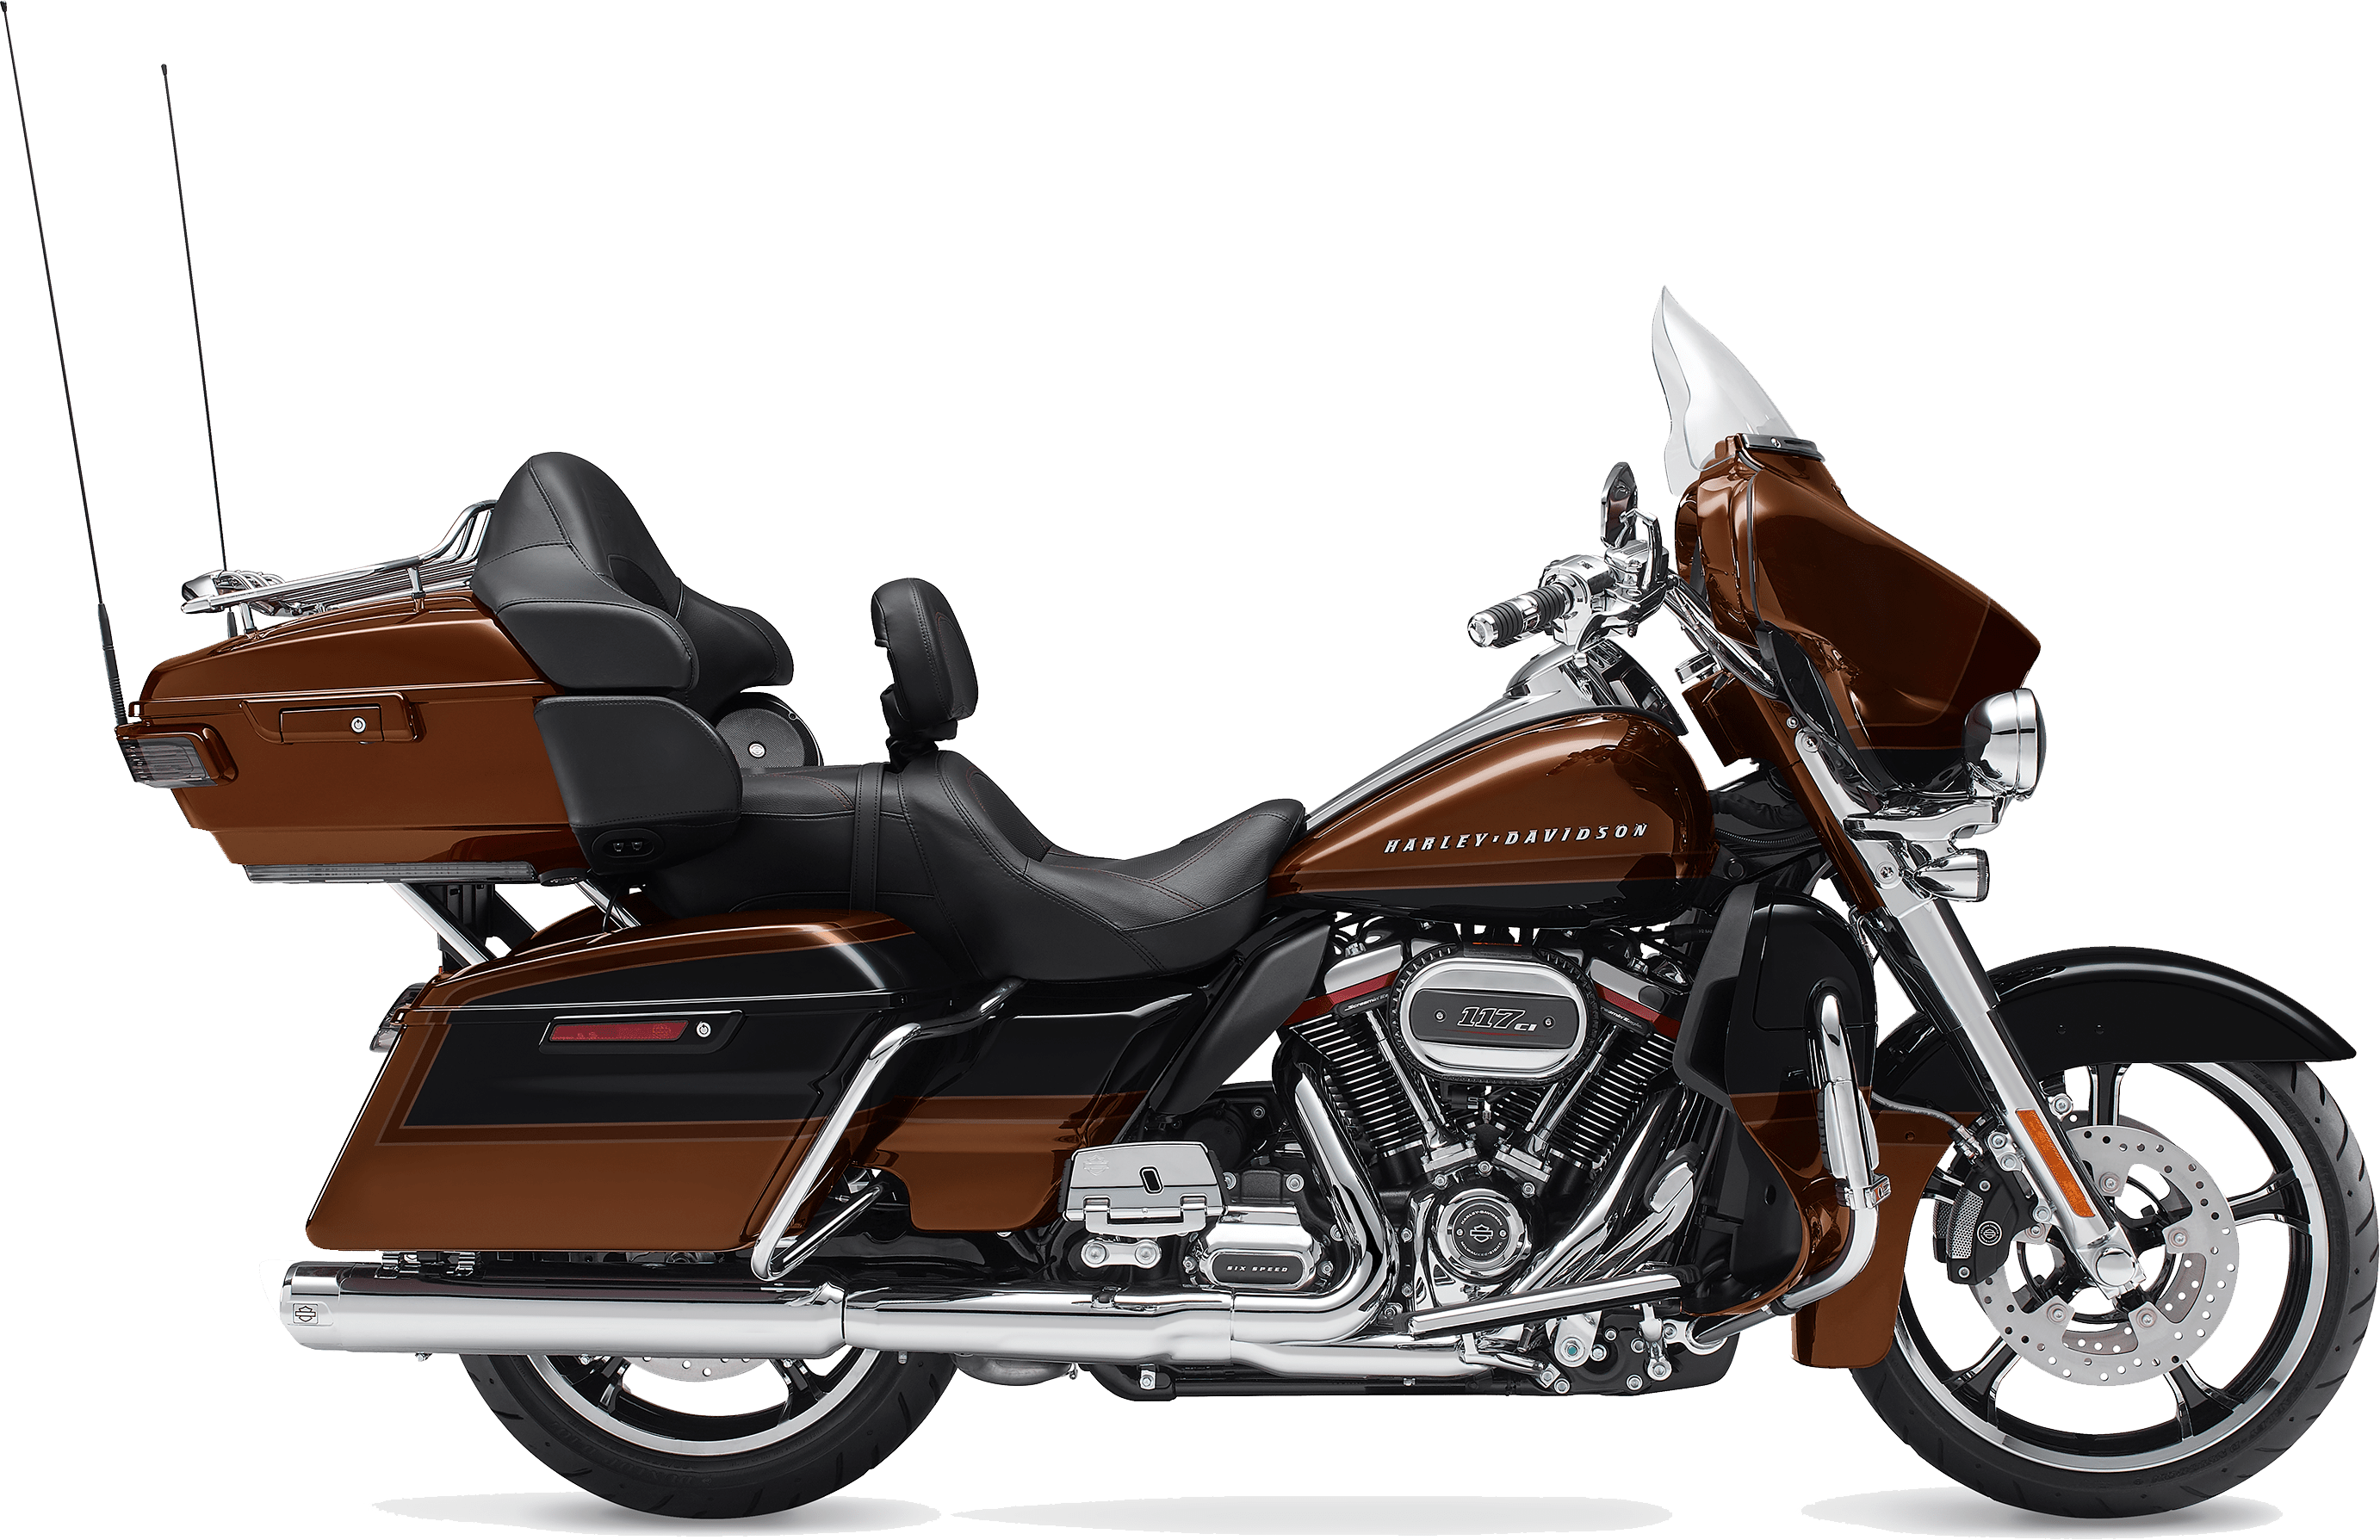 2019 Harley-Davidson H-D CVO Limited Auburn Sunglo Black Hole with Rich Bourbon